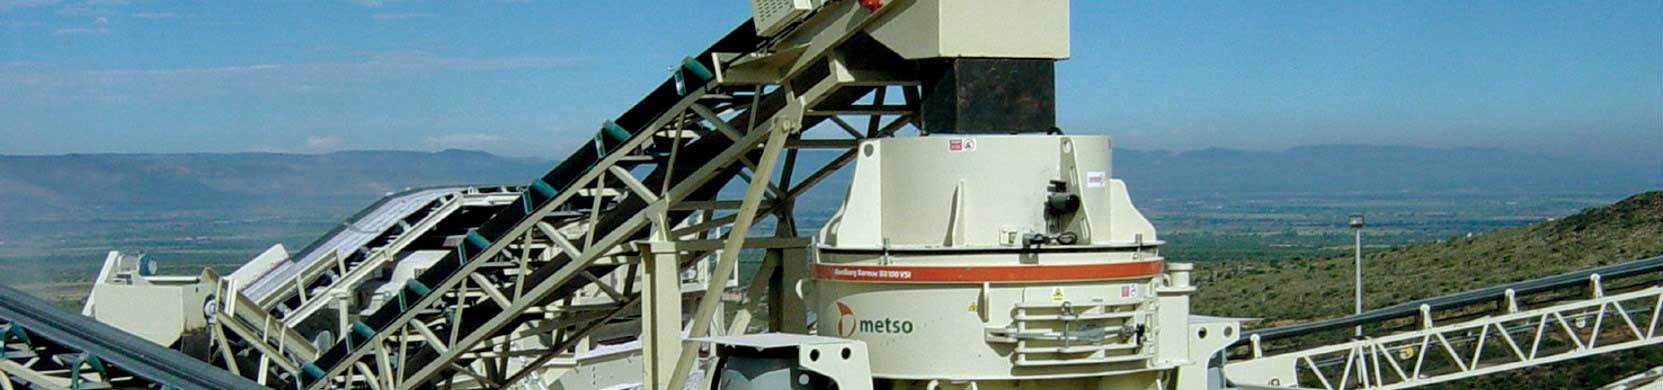 Metso Spares and Wears: Frantoparts is Official distributor for Italy